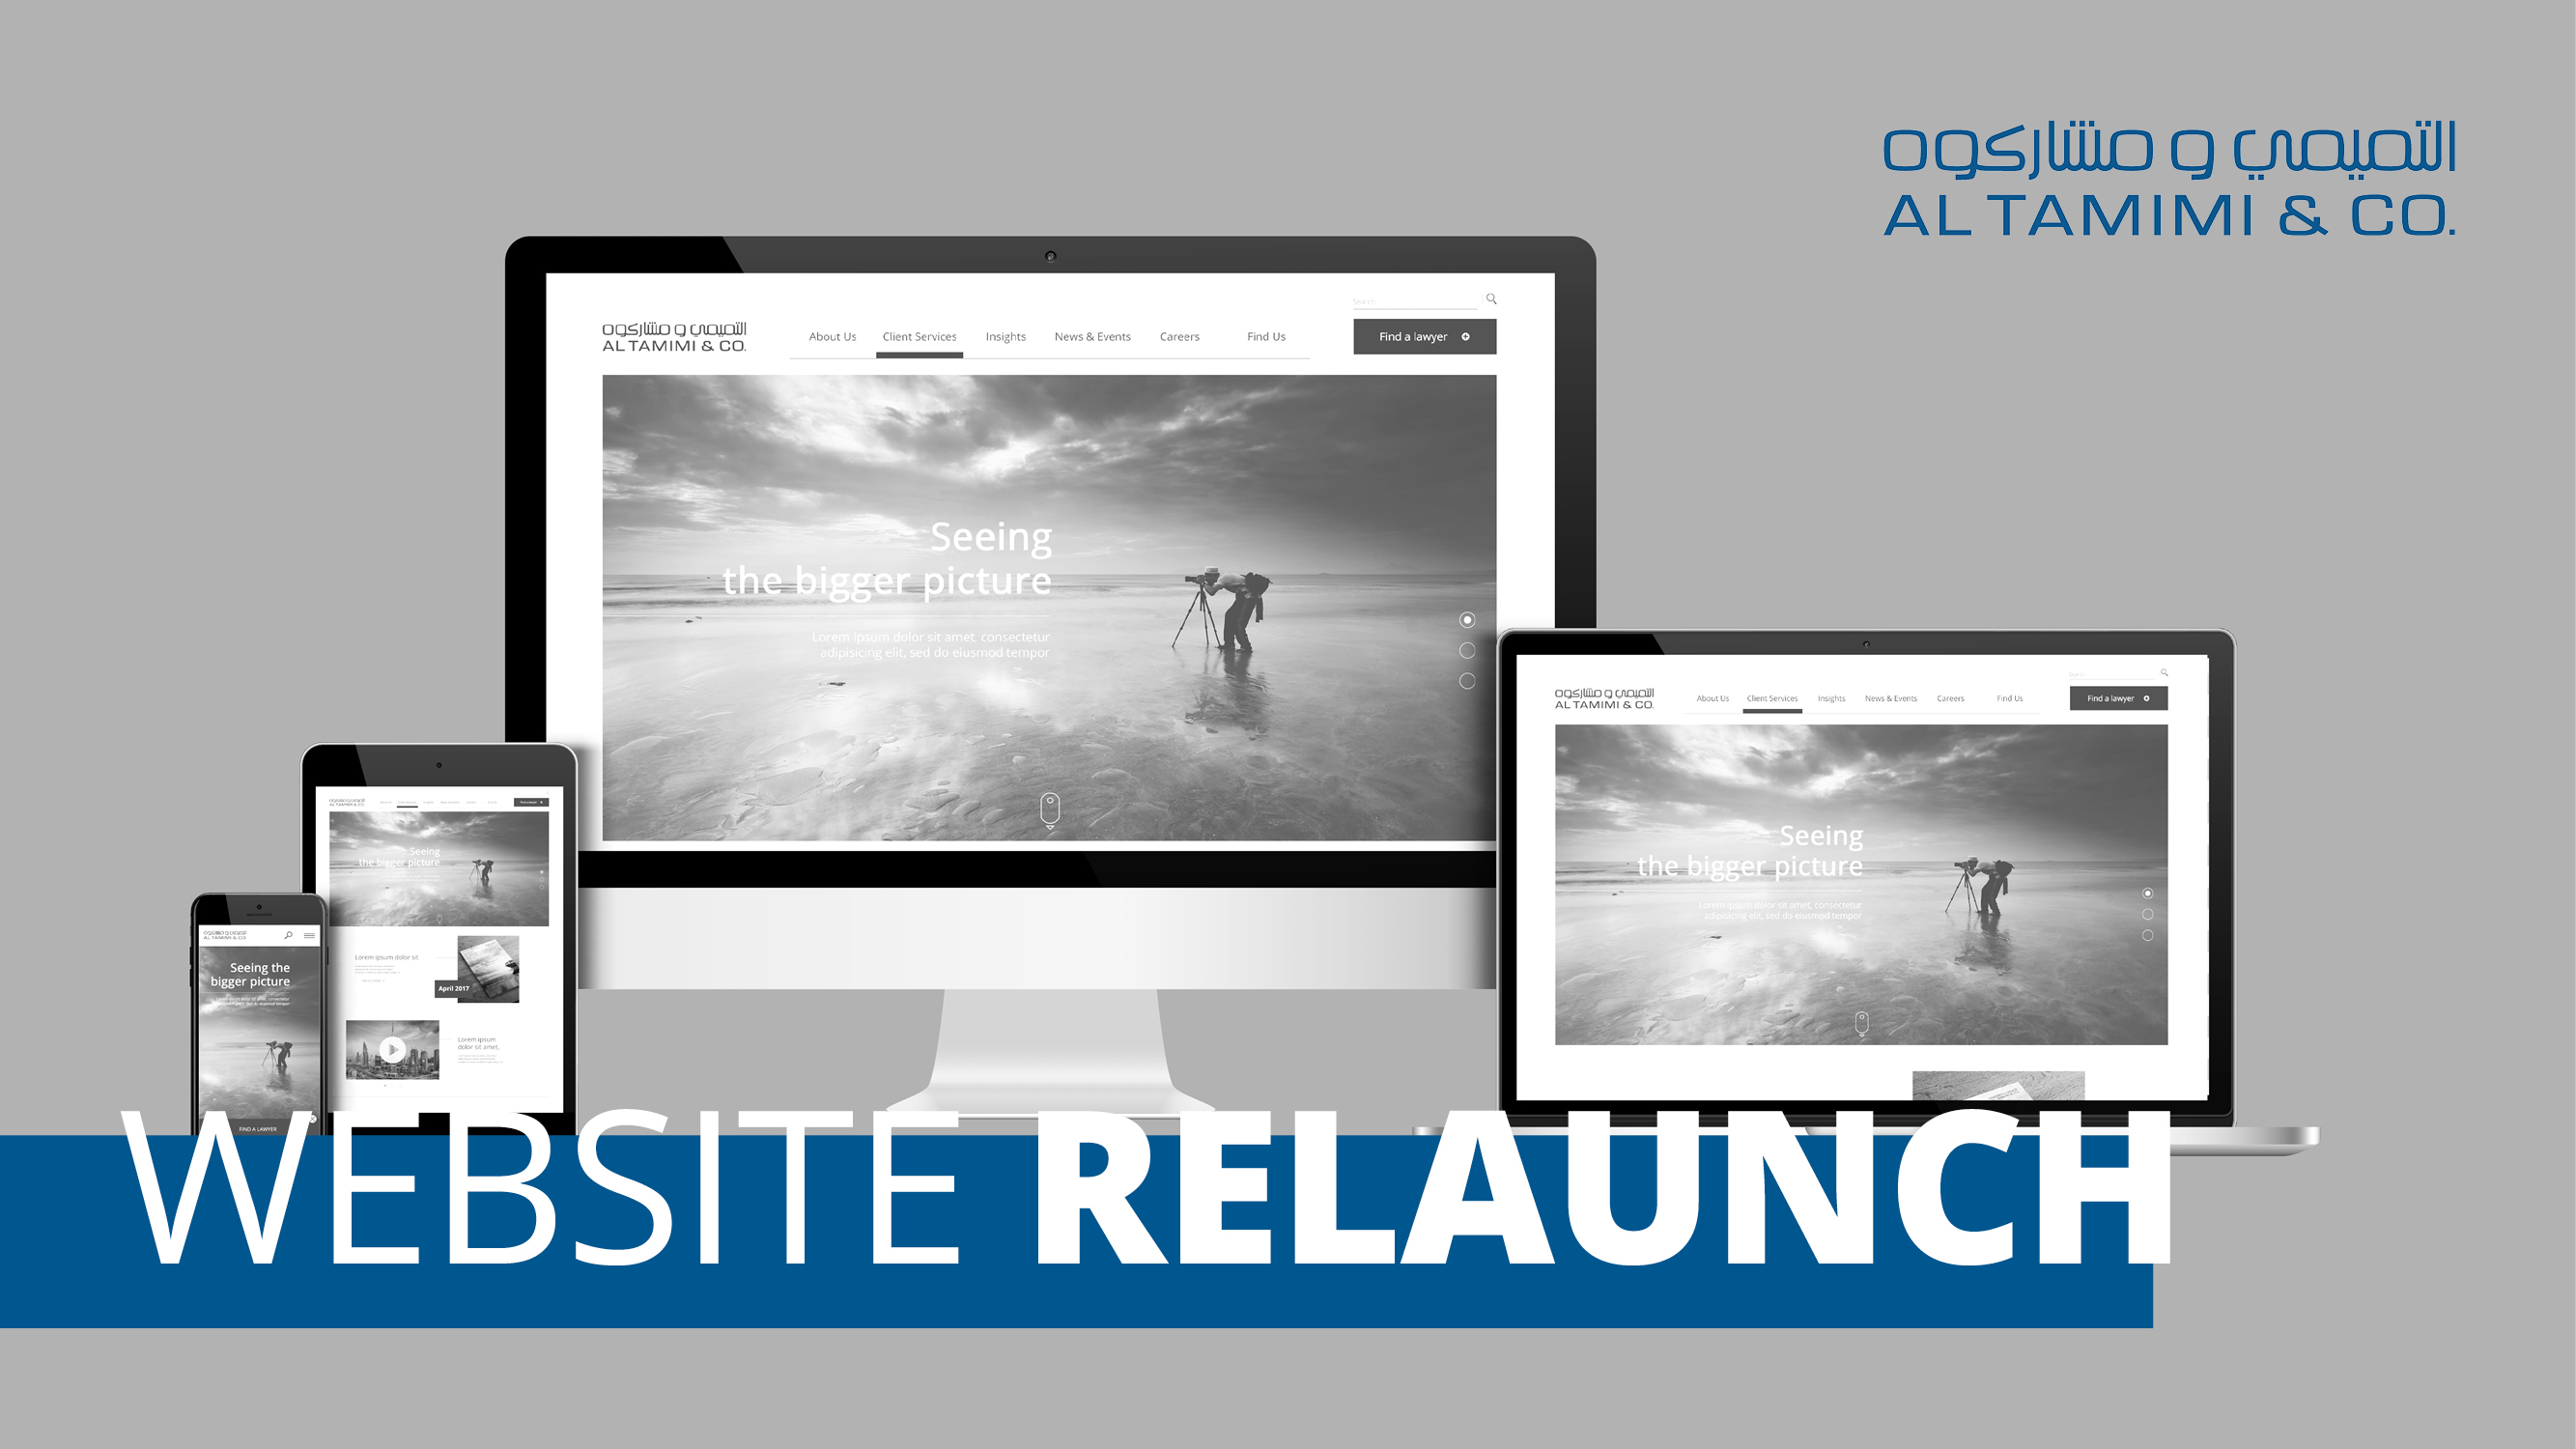 Al Tamimi launches new website